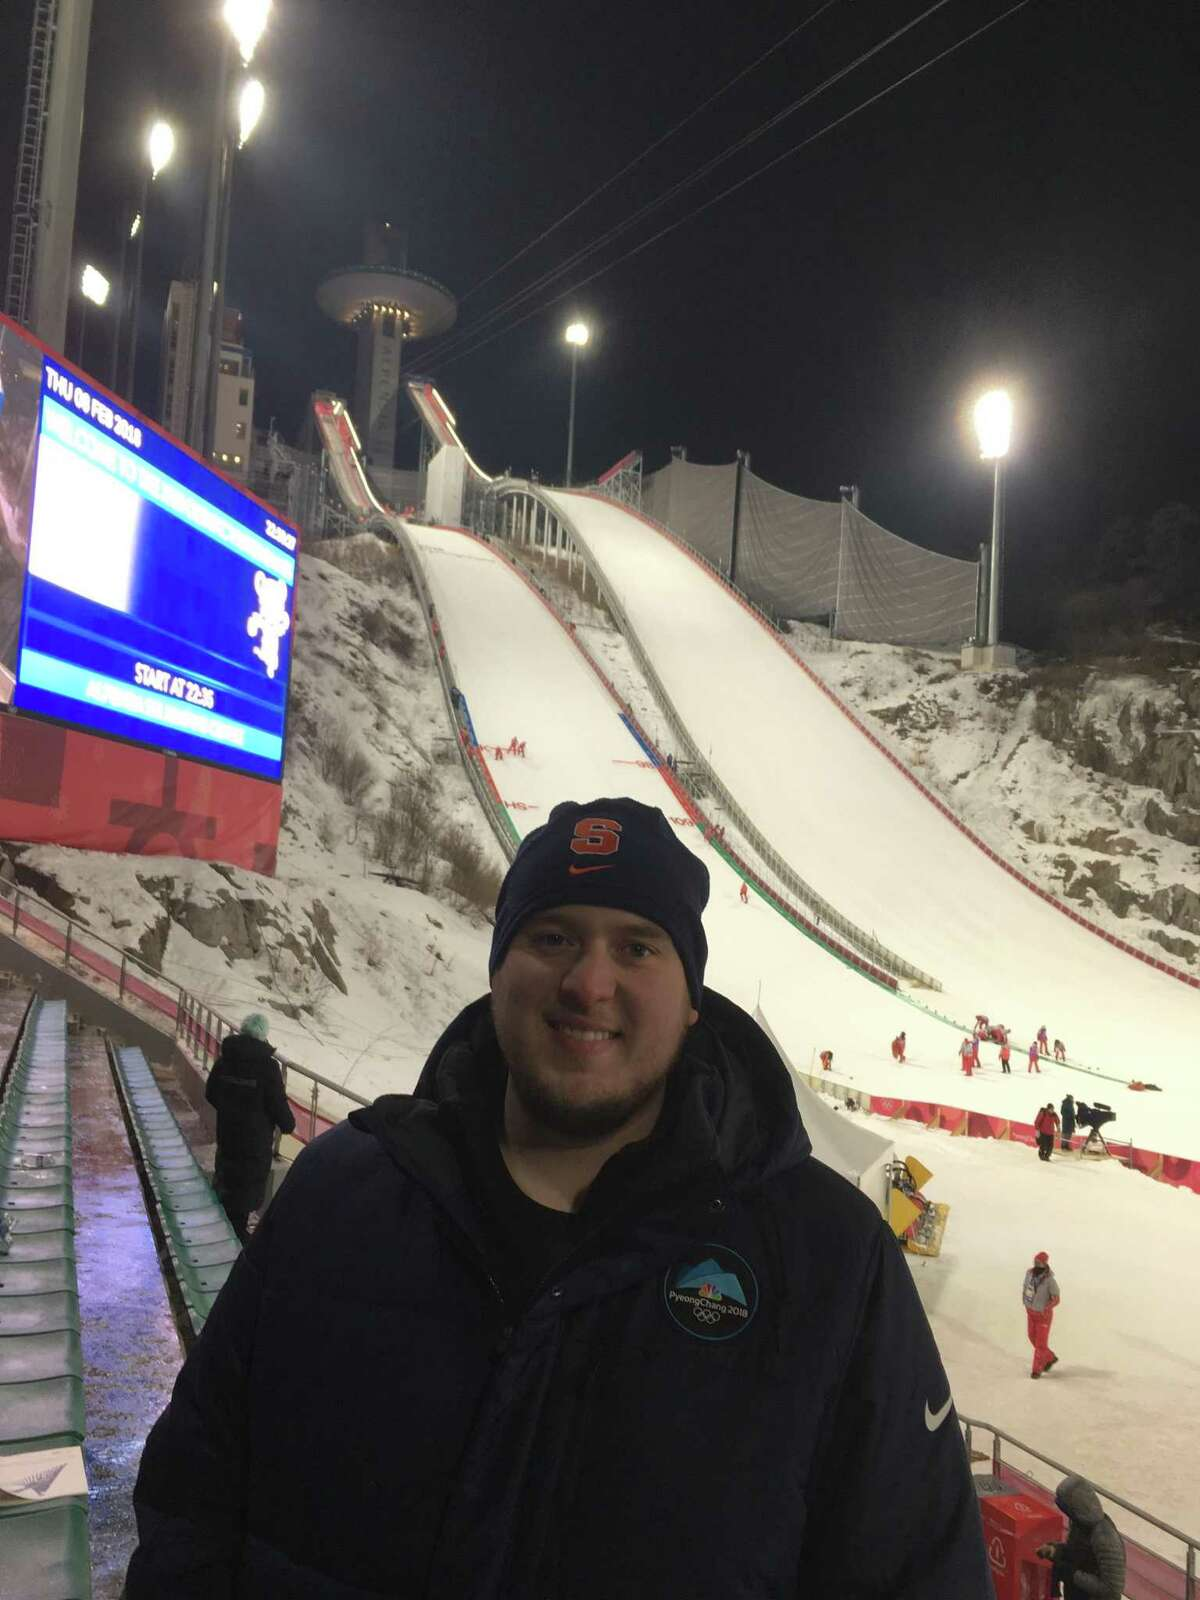 Being at the opening ceremony of the Winter Olympics in PyeongChang, South Korea, will be a moment Ricky Ricco will never forget.